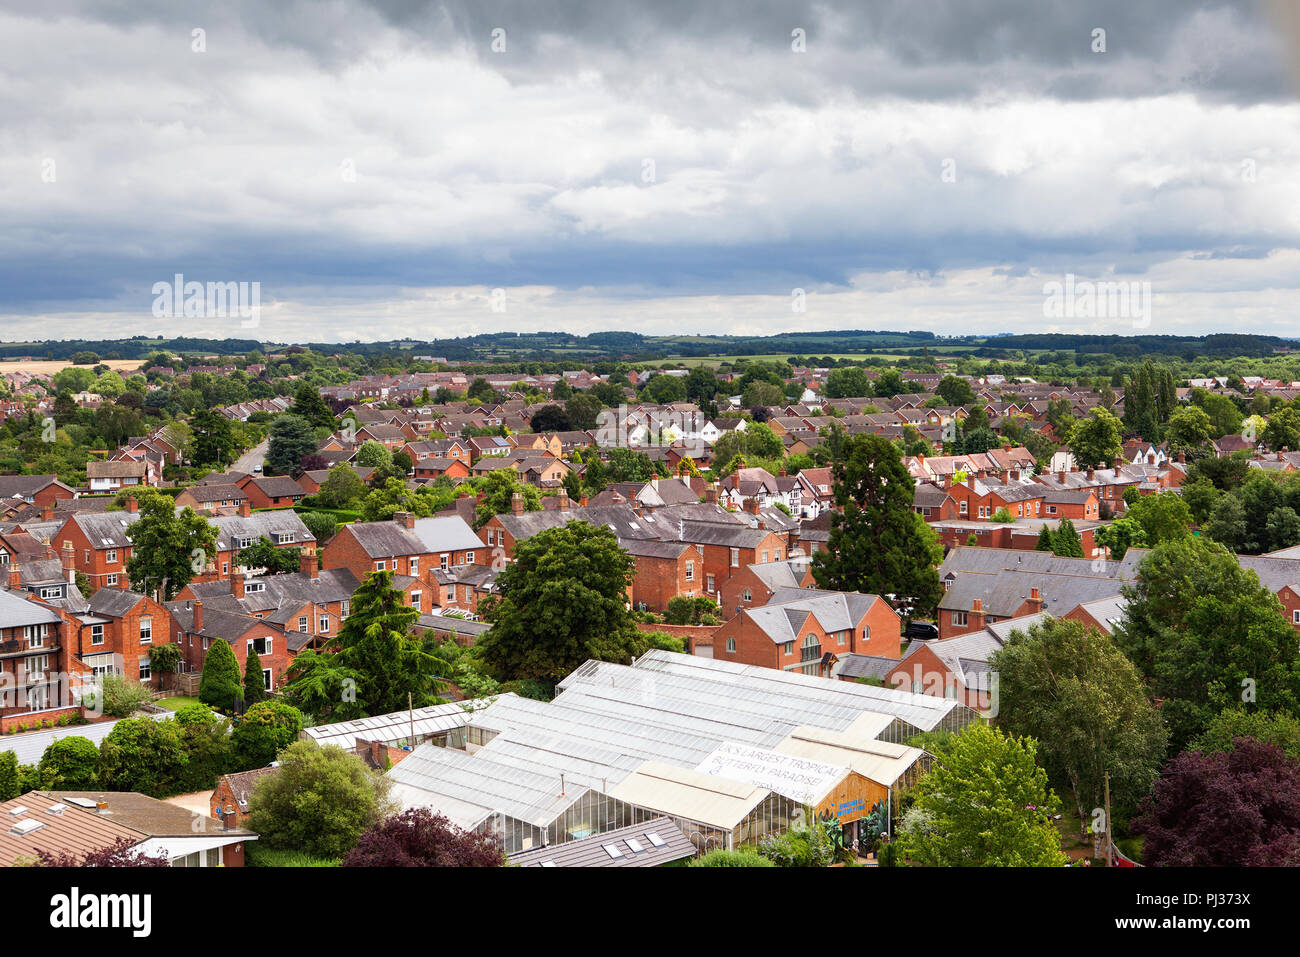 View from above of Stratford-Upon-Avon, Warwickhire, England, butterfly farm, selective focus - Stock Image